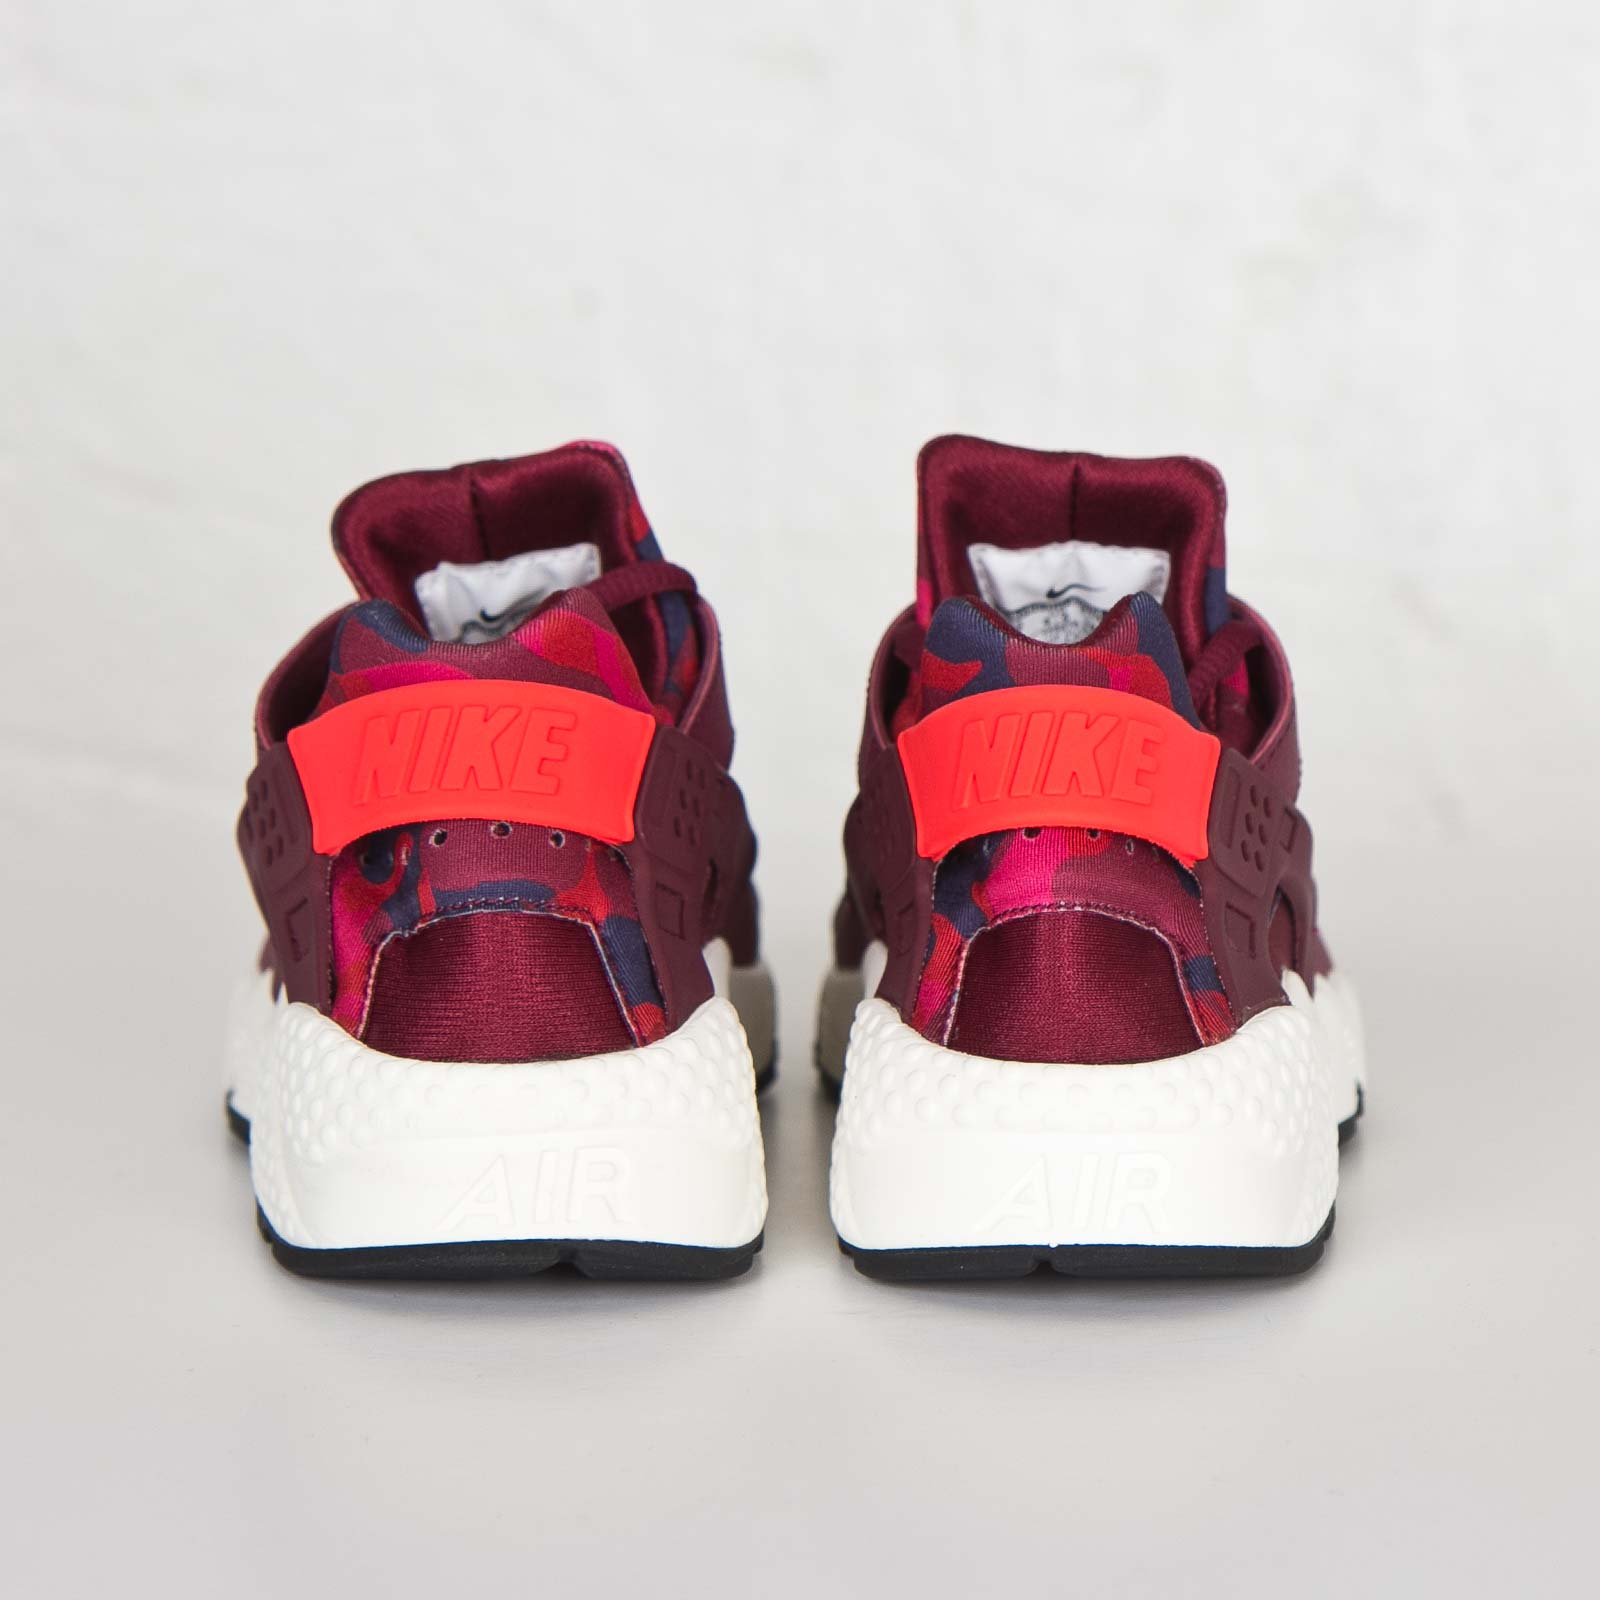 a90ba4b21bb96 Nike Wmns Air Huarache Run Print - 725076-602 - Sneakersnstuff ...